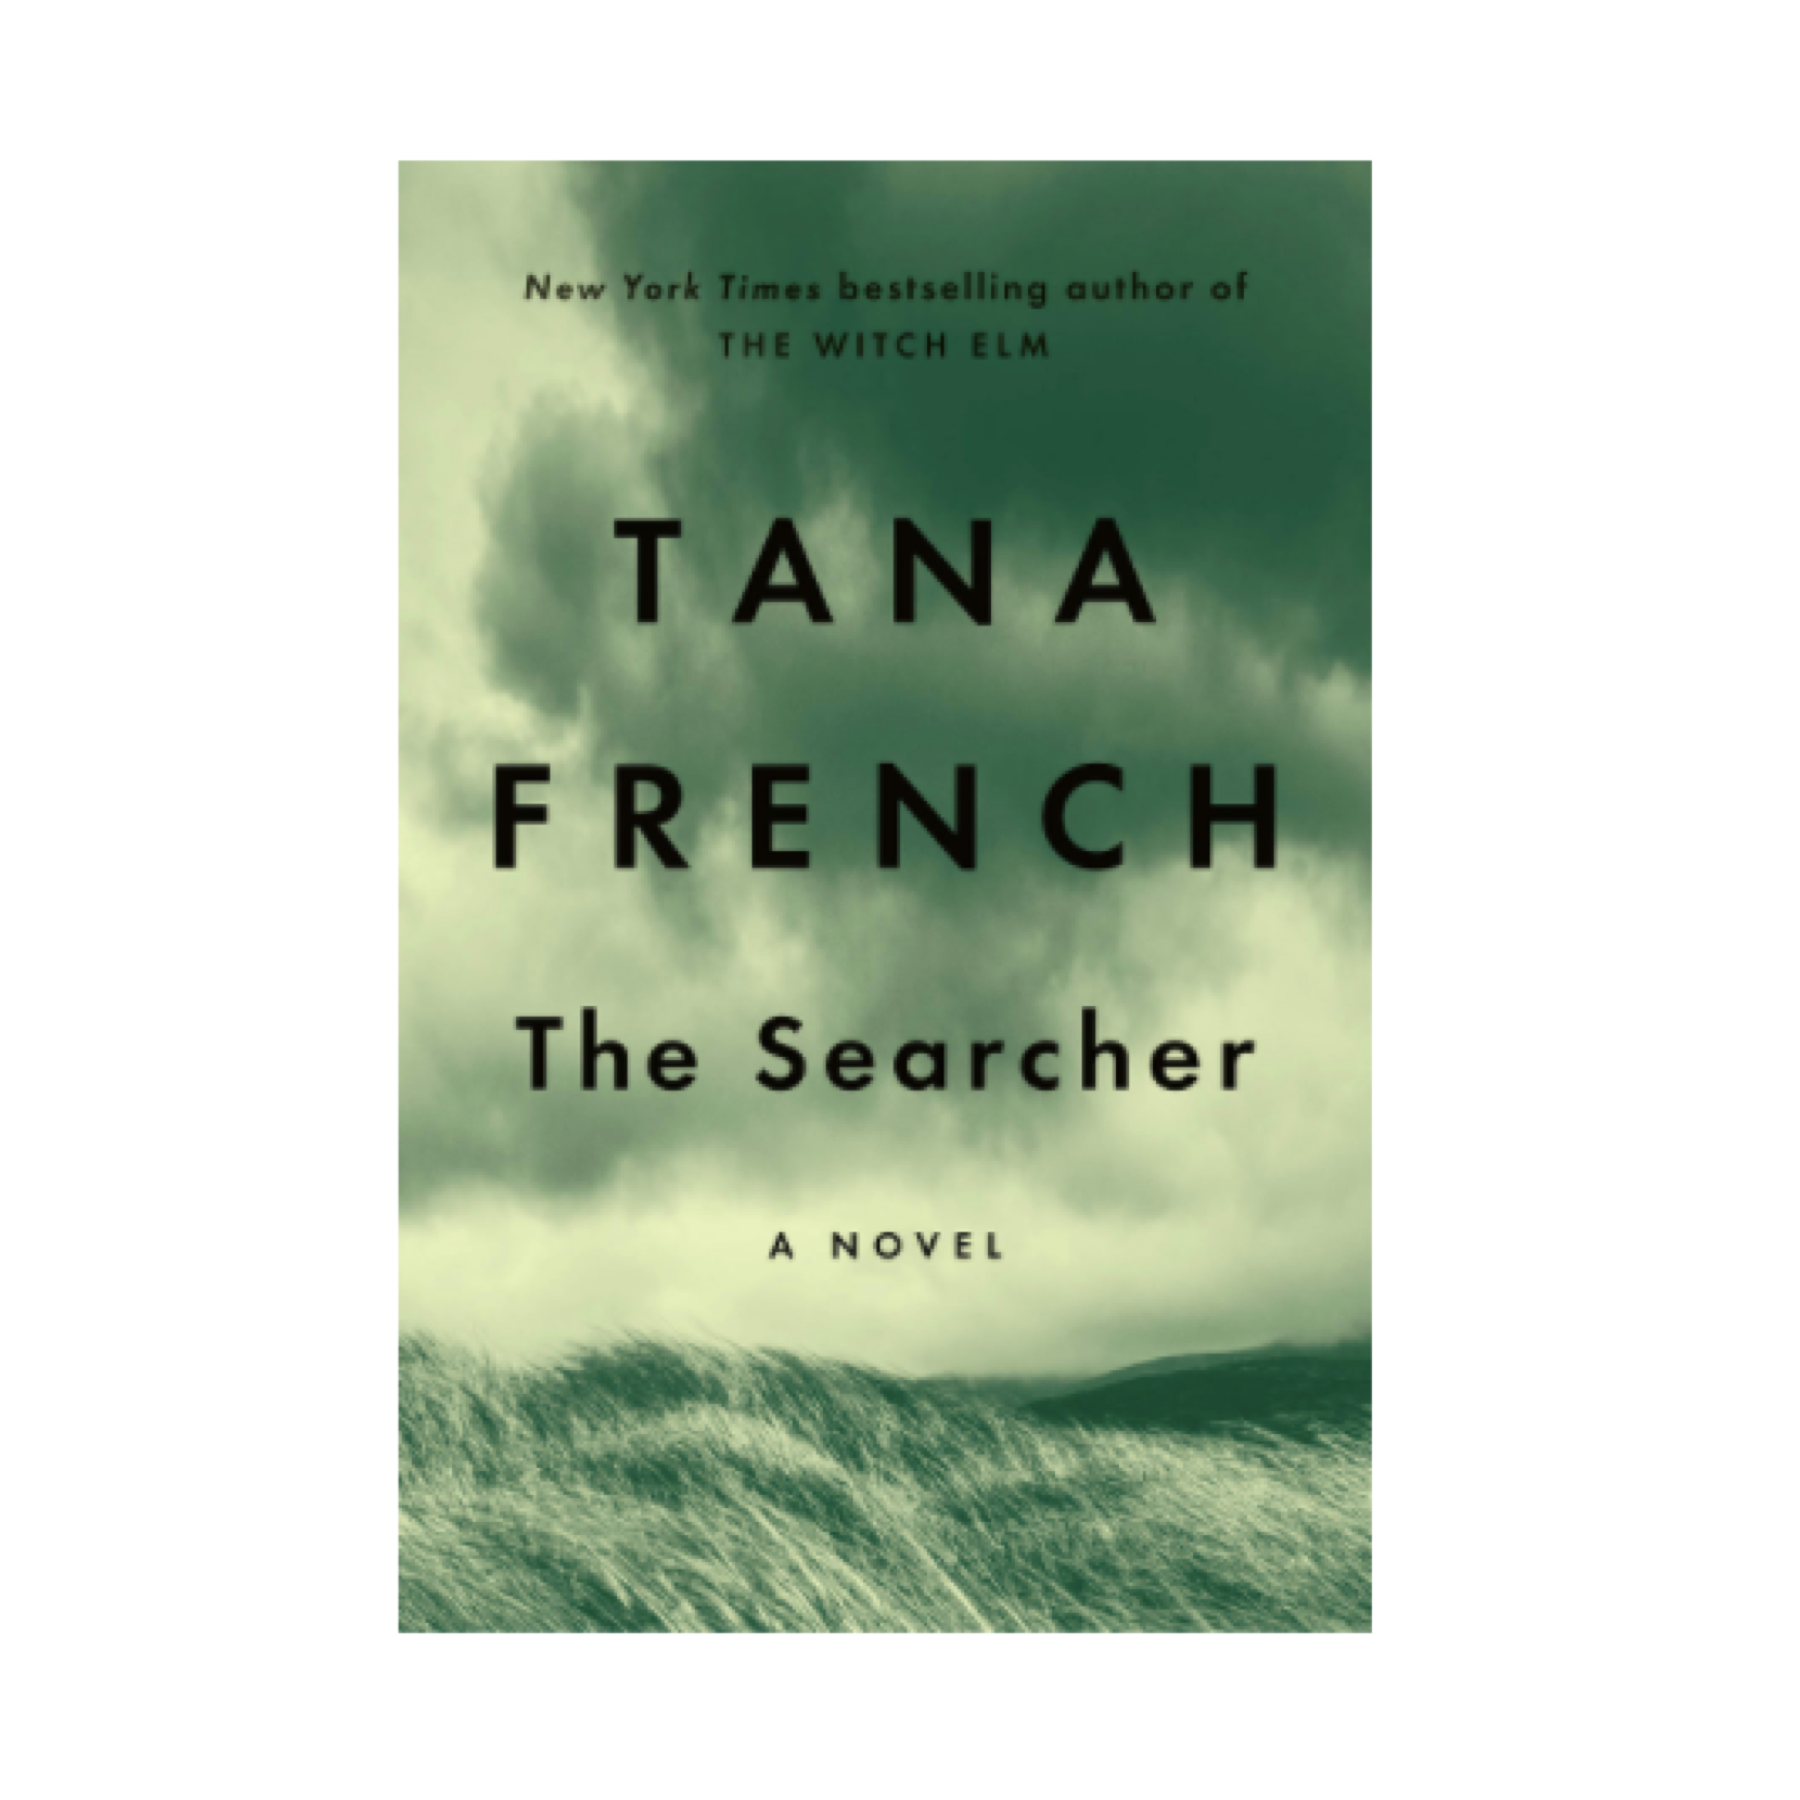 the searcher novel by tana french